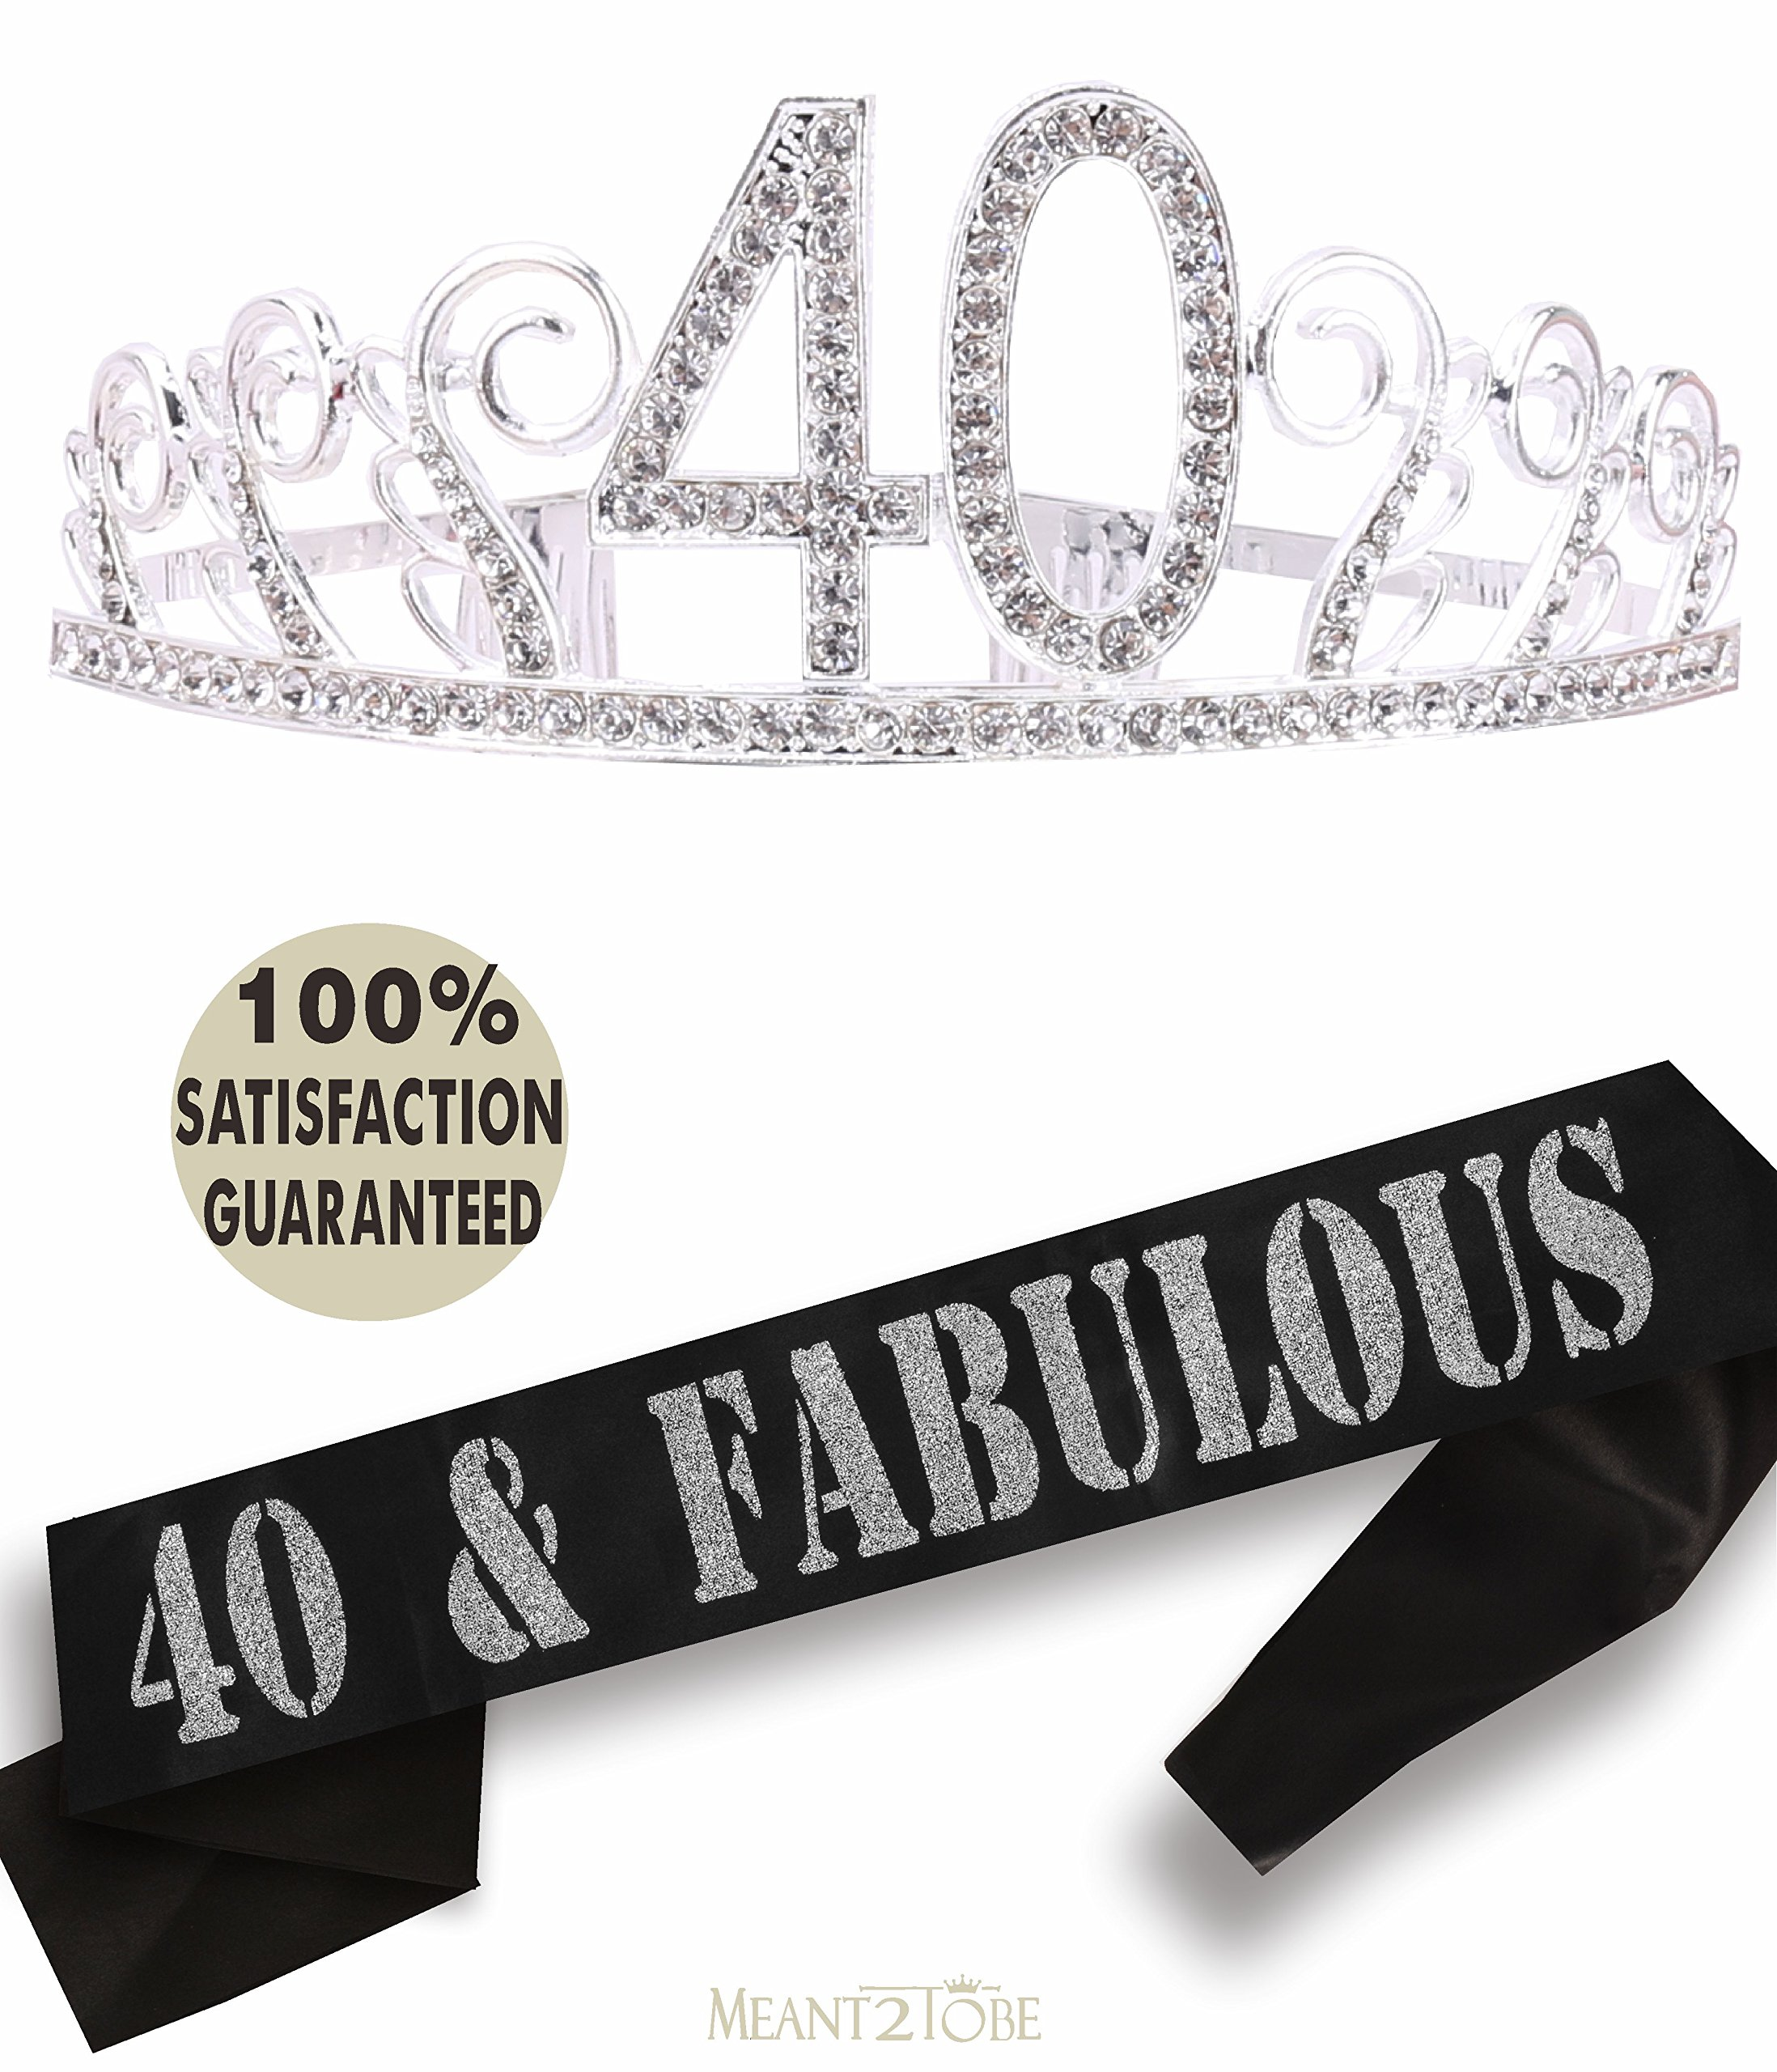 40th Birthday Tiara and Sash, Happy 40th Birthday Party Supplies, 40 & Fabulous Black Glitter Satin Sash and Crystal Tiara Birthday Crown for 40th Birthday Party Supplies and Decorations (Tiara+Sash)